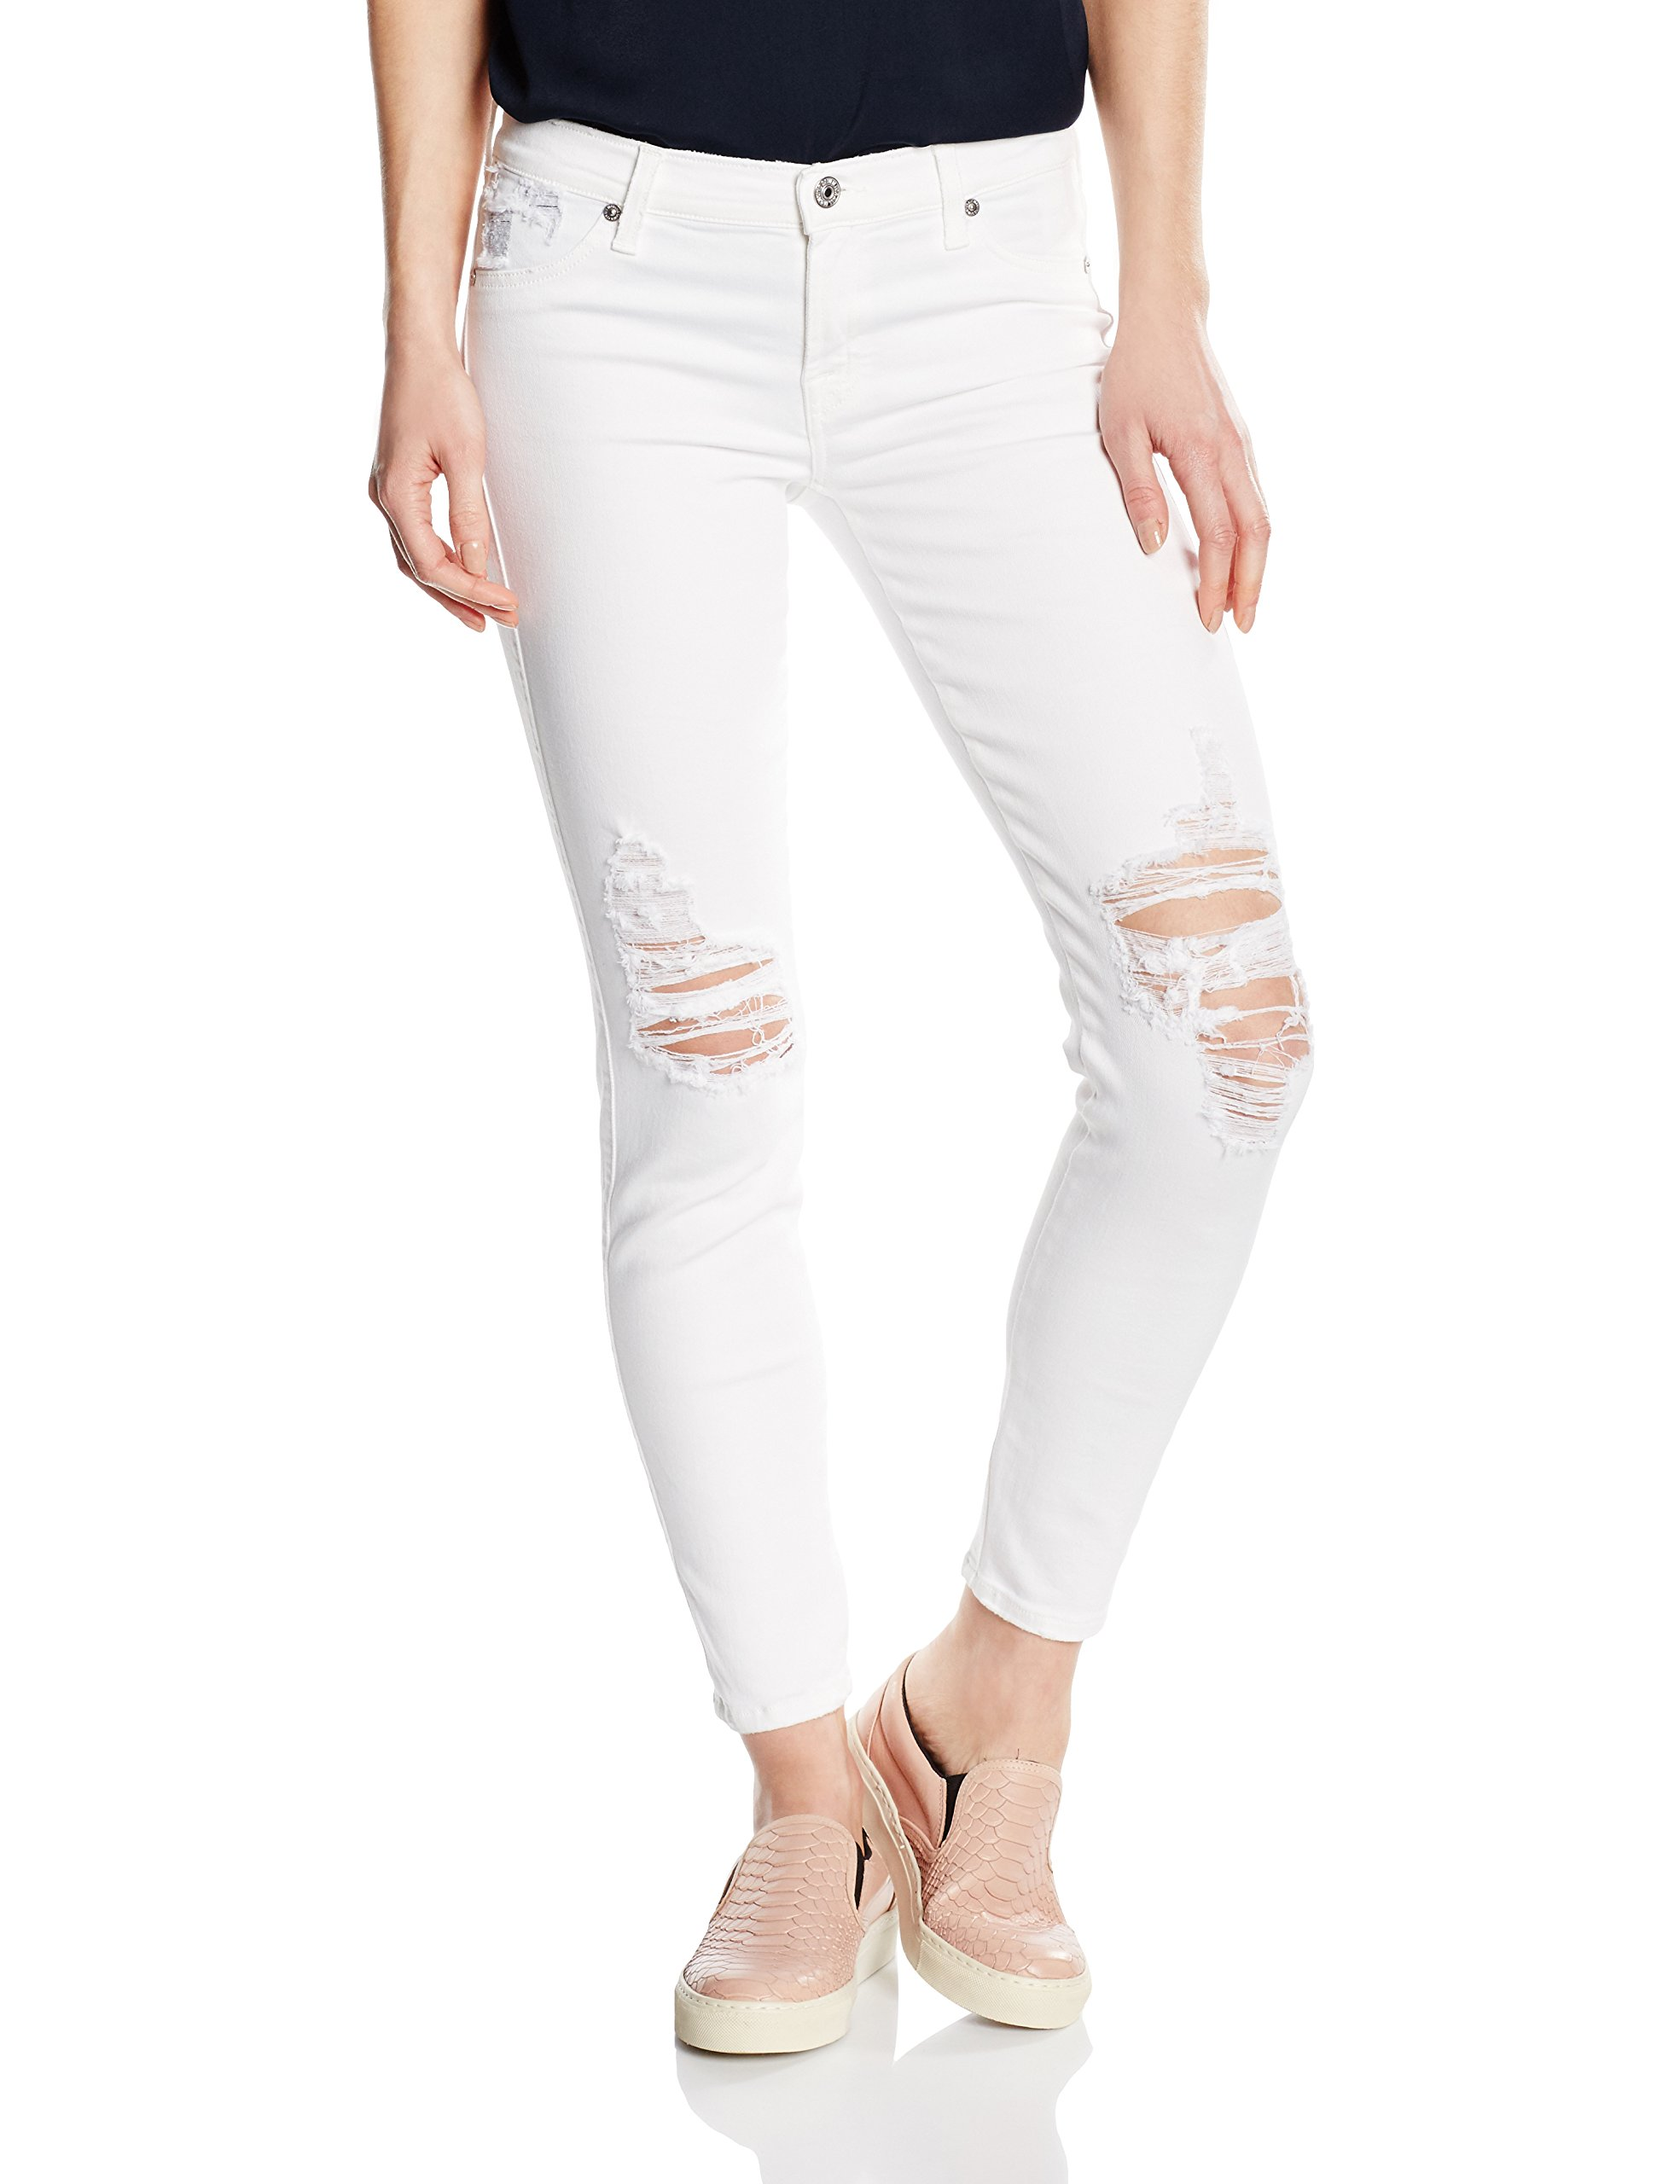 7 For l28taille Fabricant28Femme All Svuq580 Mankind MwW28 JeansBlancauthentic Distressed White EYe2IDWH9